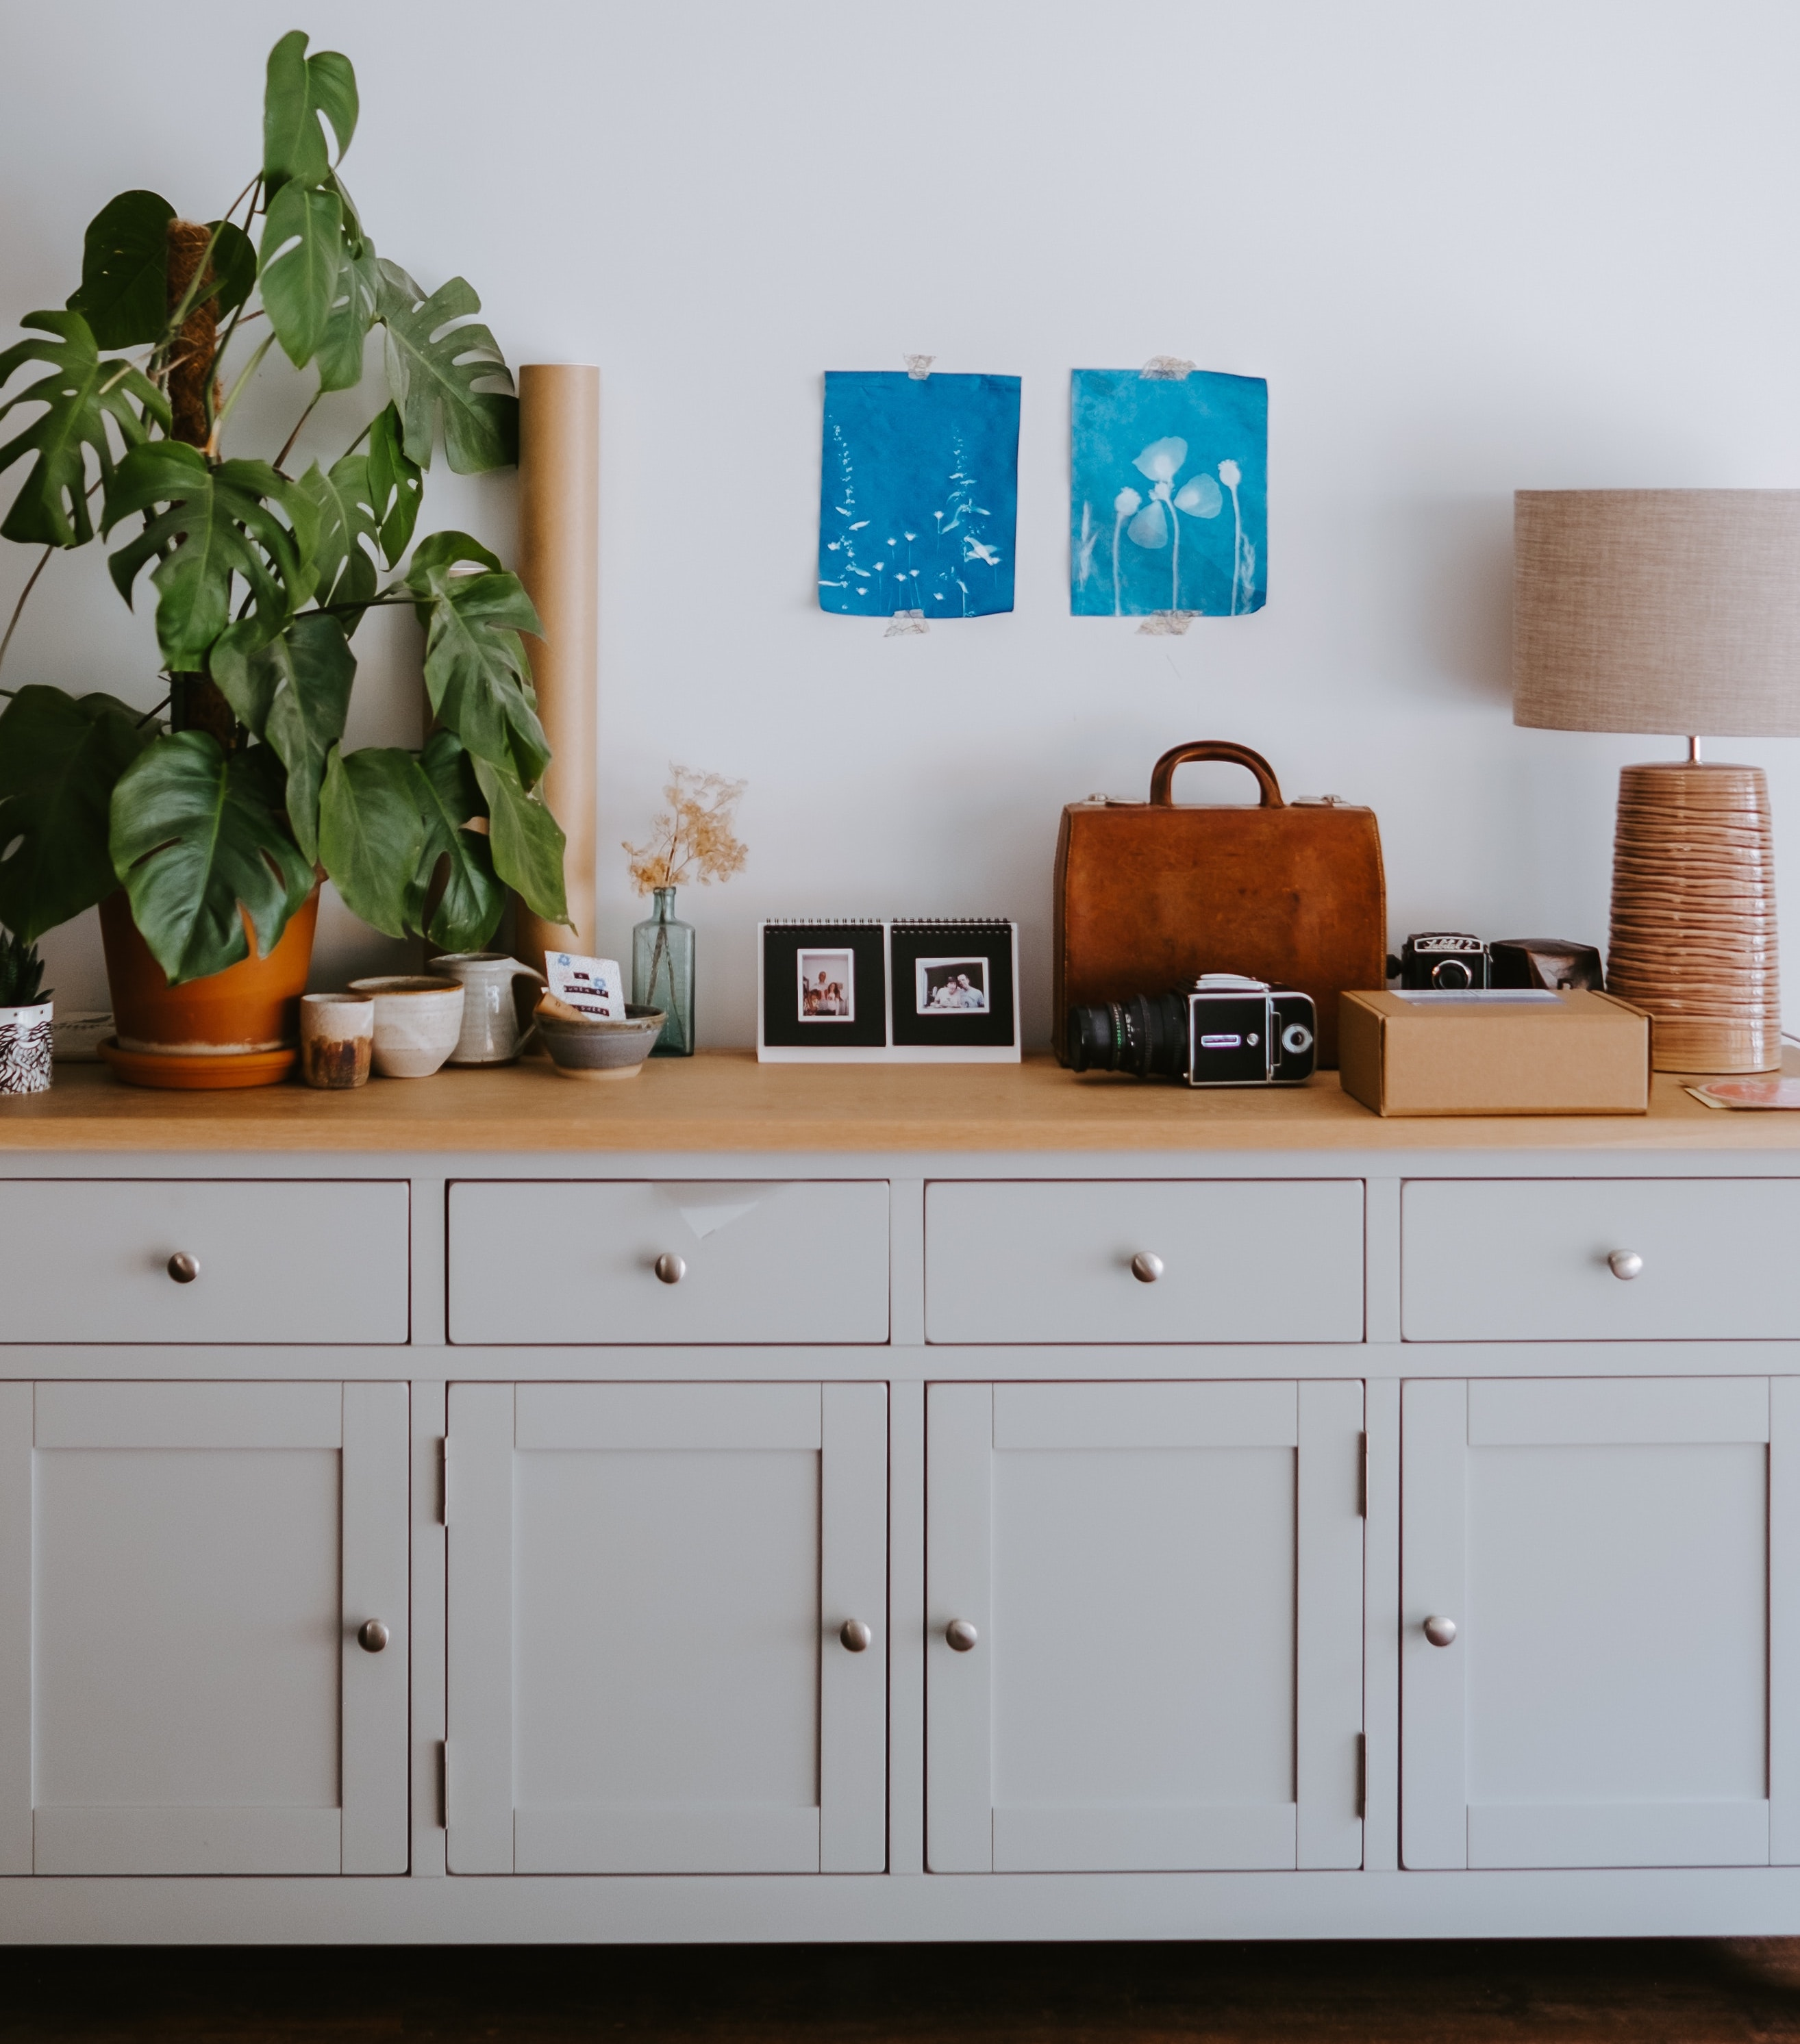 How much furniture assembly services near you might cost